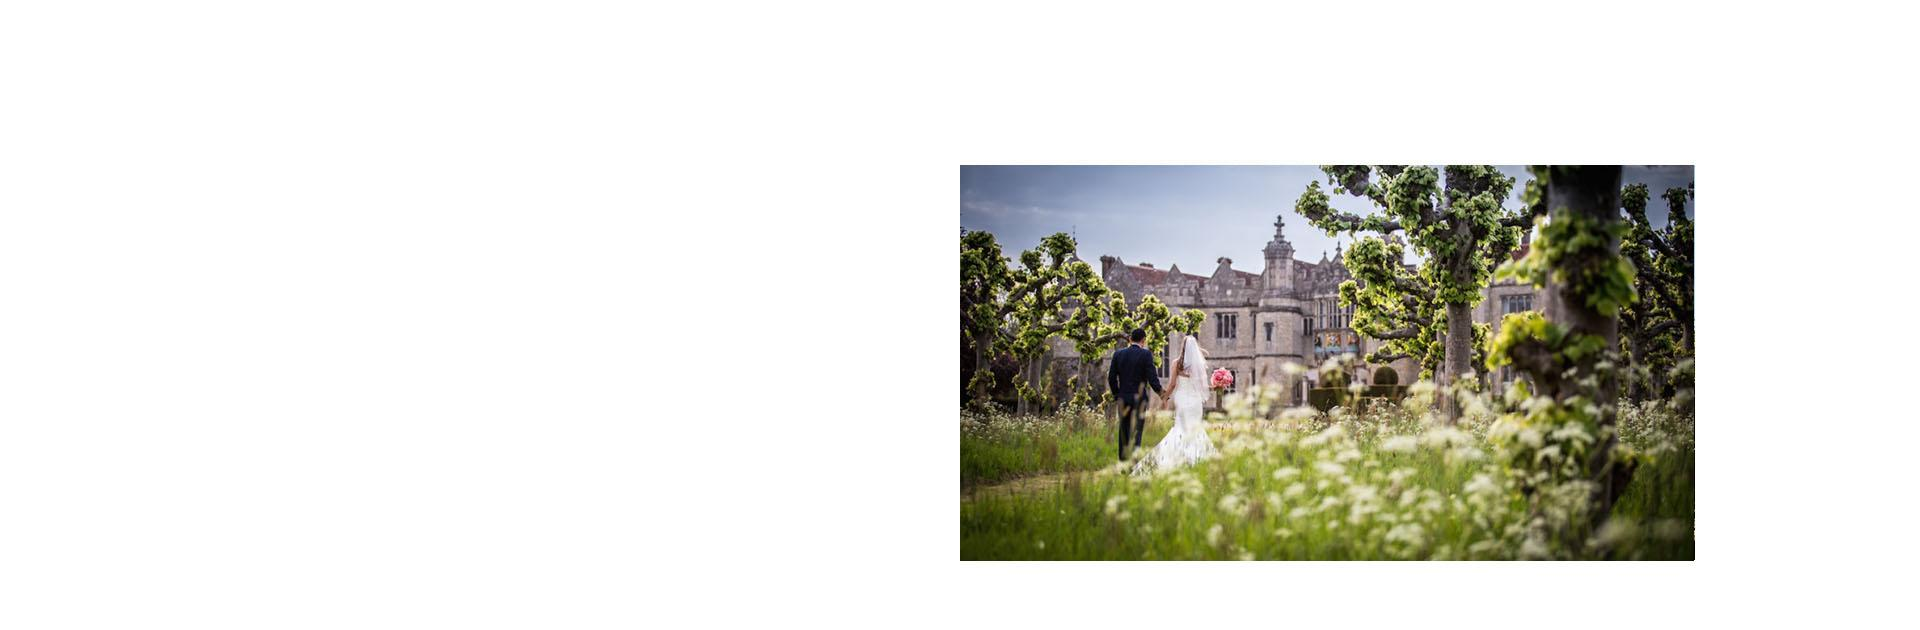 Featured Wedding Venue: Hengrave Hall